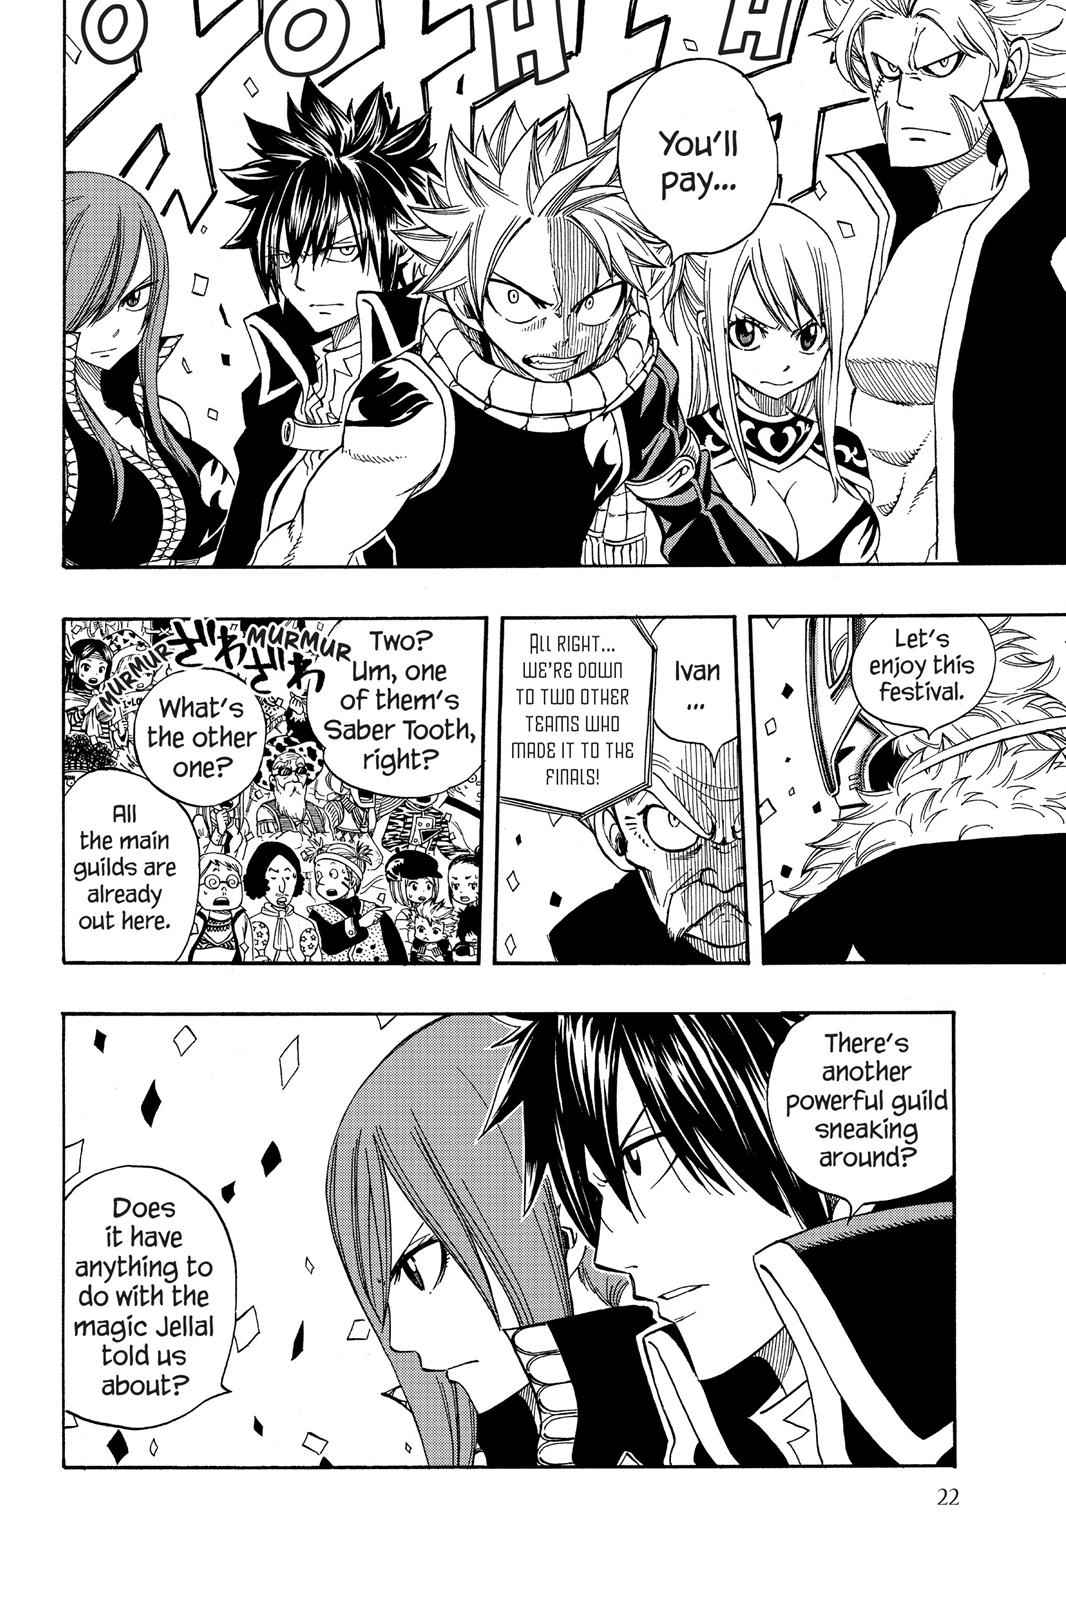 Fairy Tail Chapter 267 Page 23